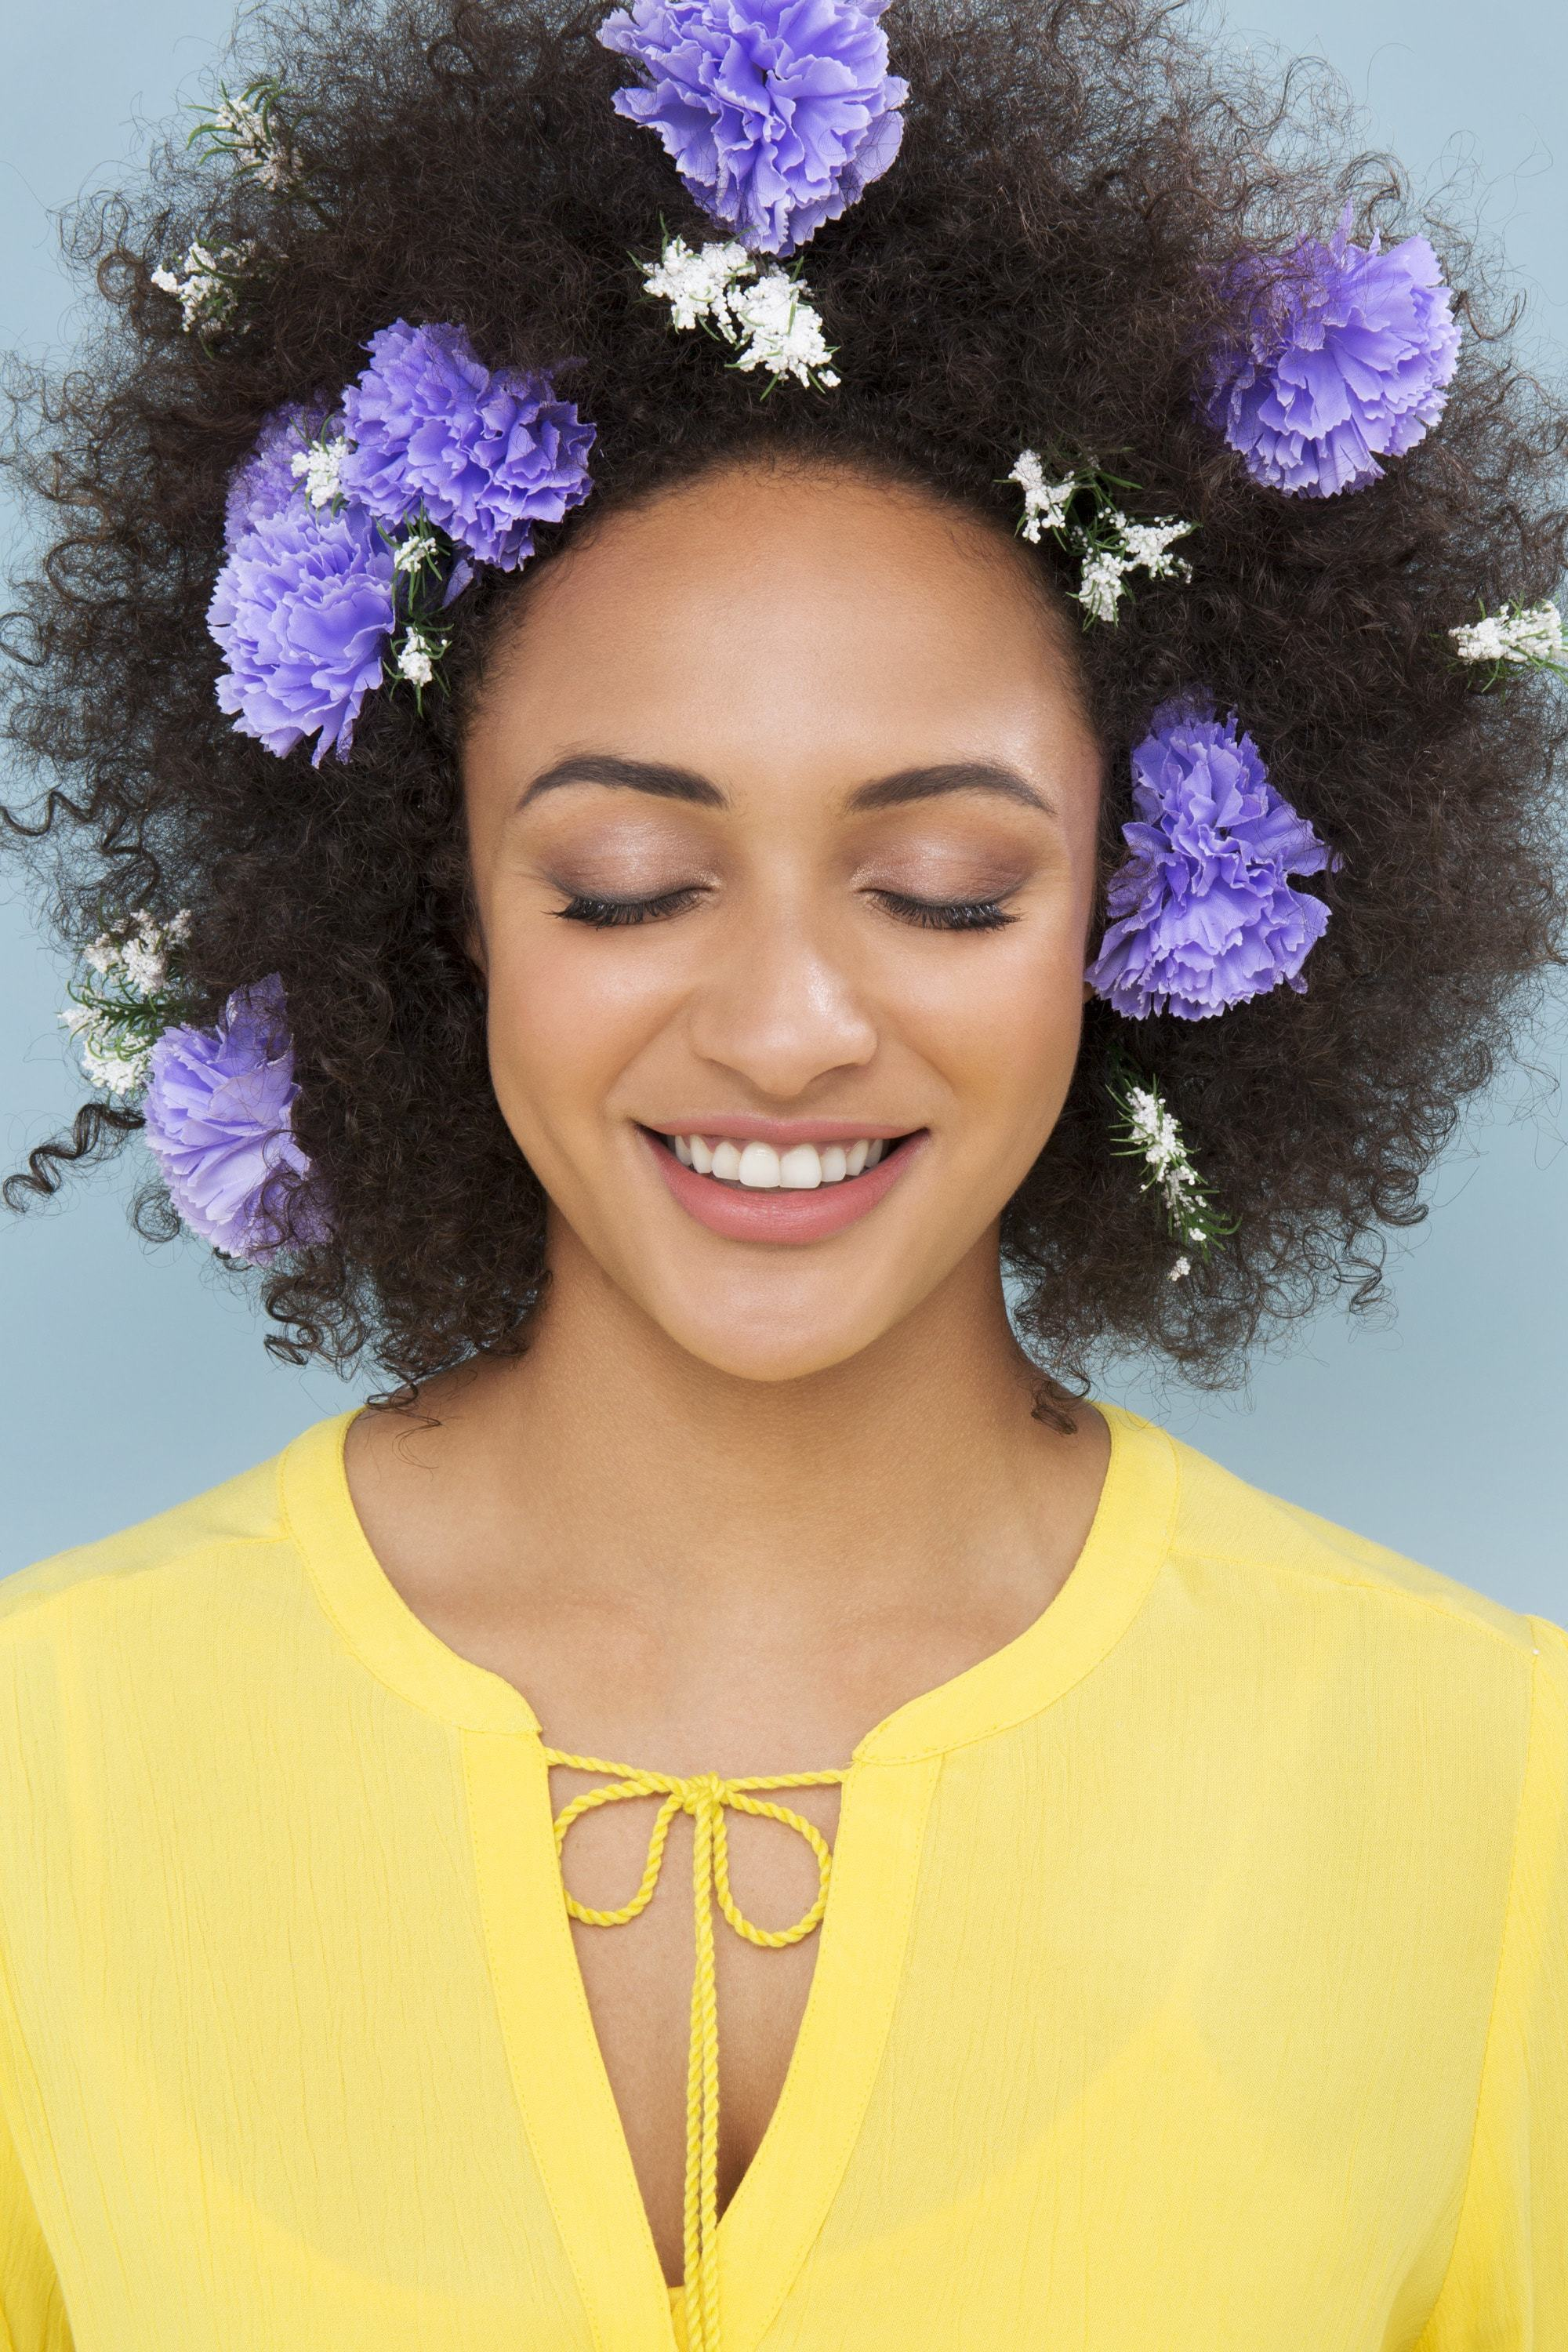 head shot of model with big afro with flowers in it wearing yellow